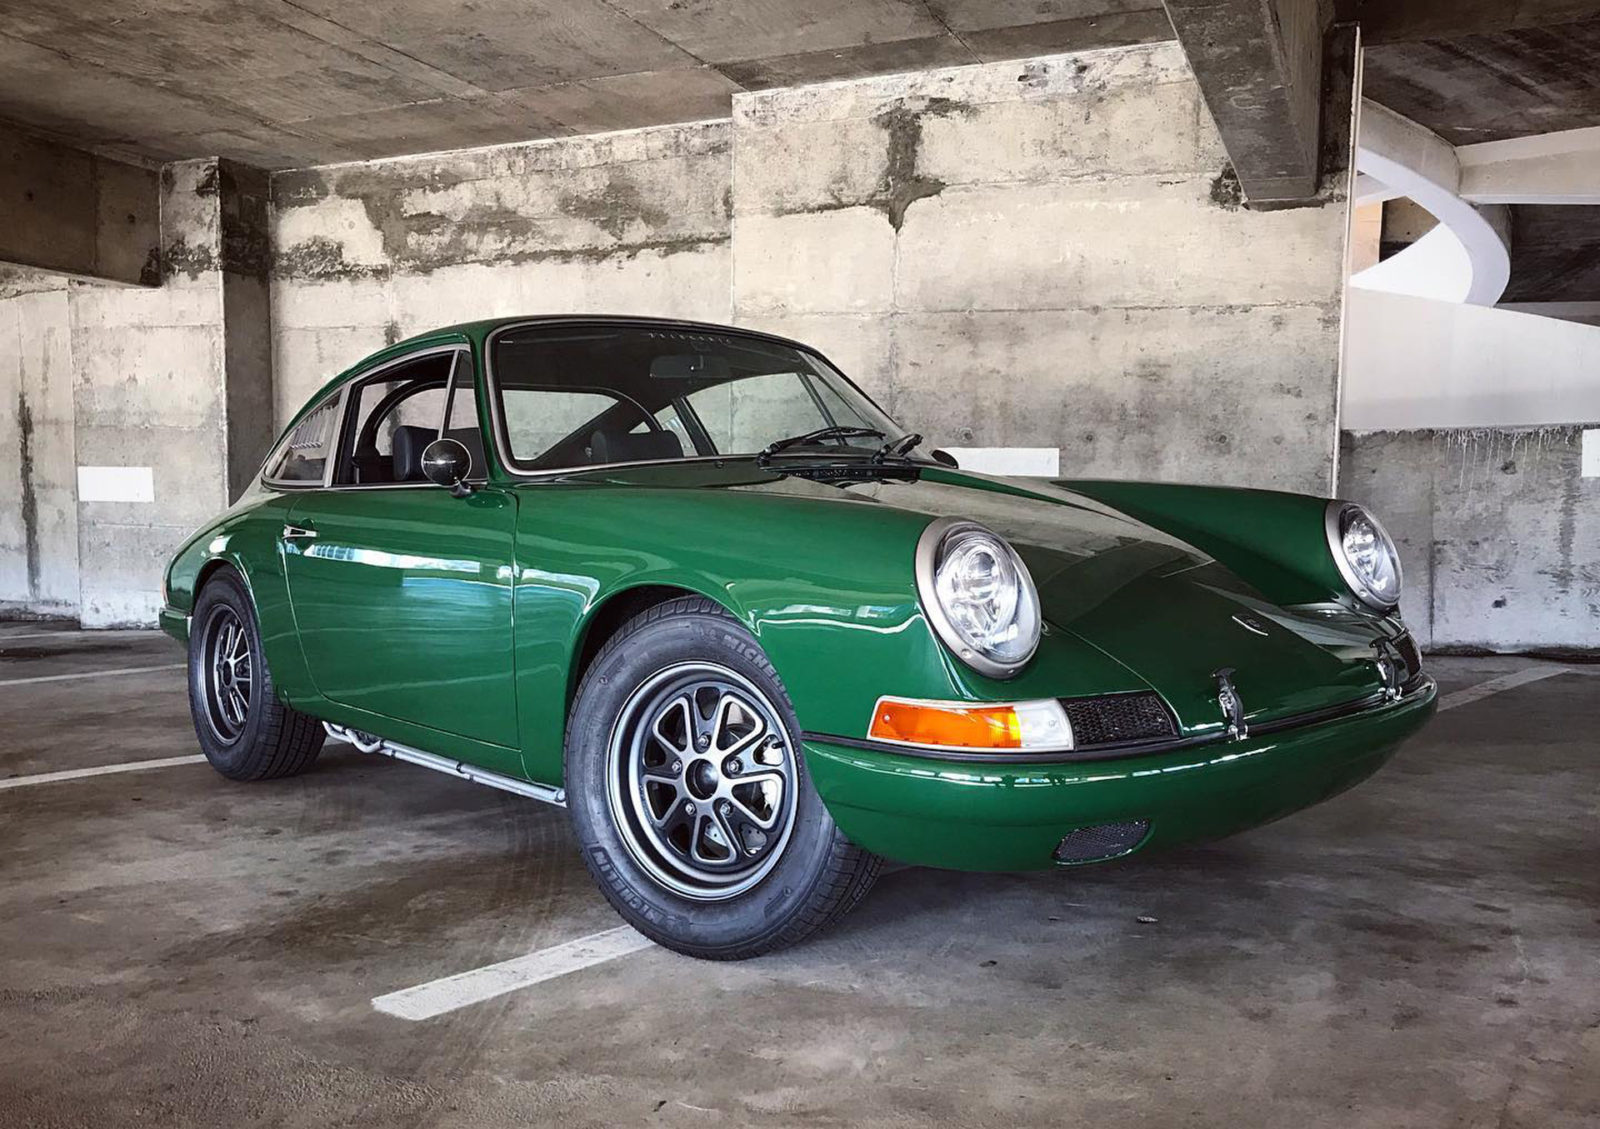 jay-leno-drives-an-electric-porsche-912-built-by-zelectric